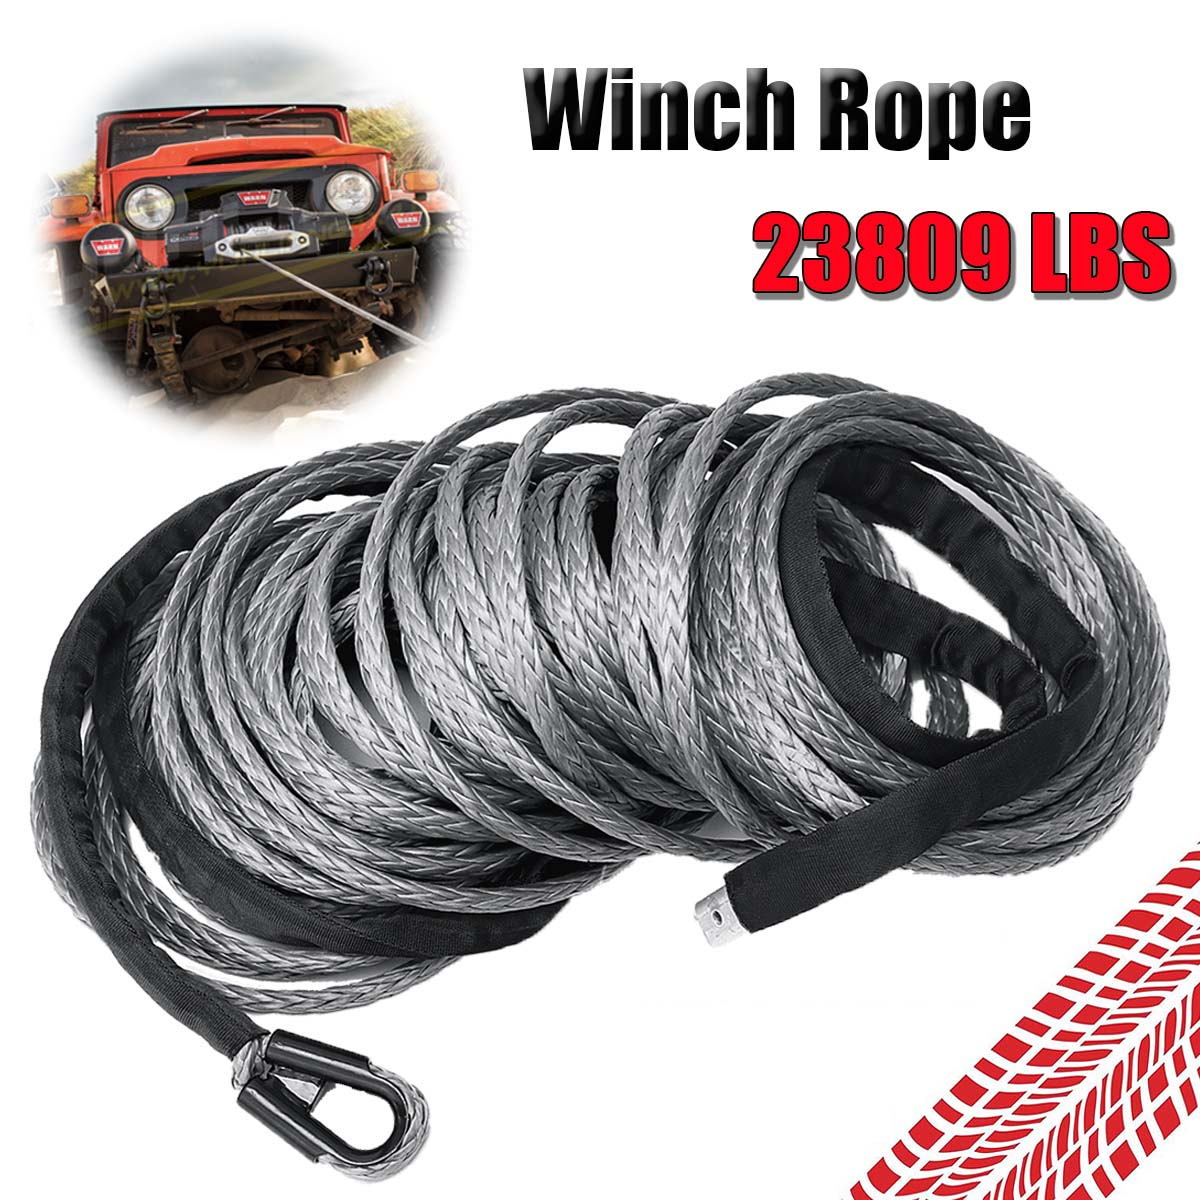 10MMx30M 23809LBS Synthetic Winch Rope Heavy Duty Towing Rope Line Grey Recovery Cable Tow Cord for 4WD Offroad ATV